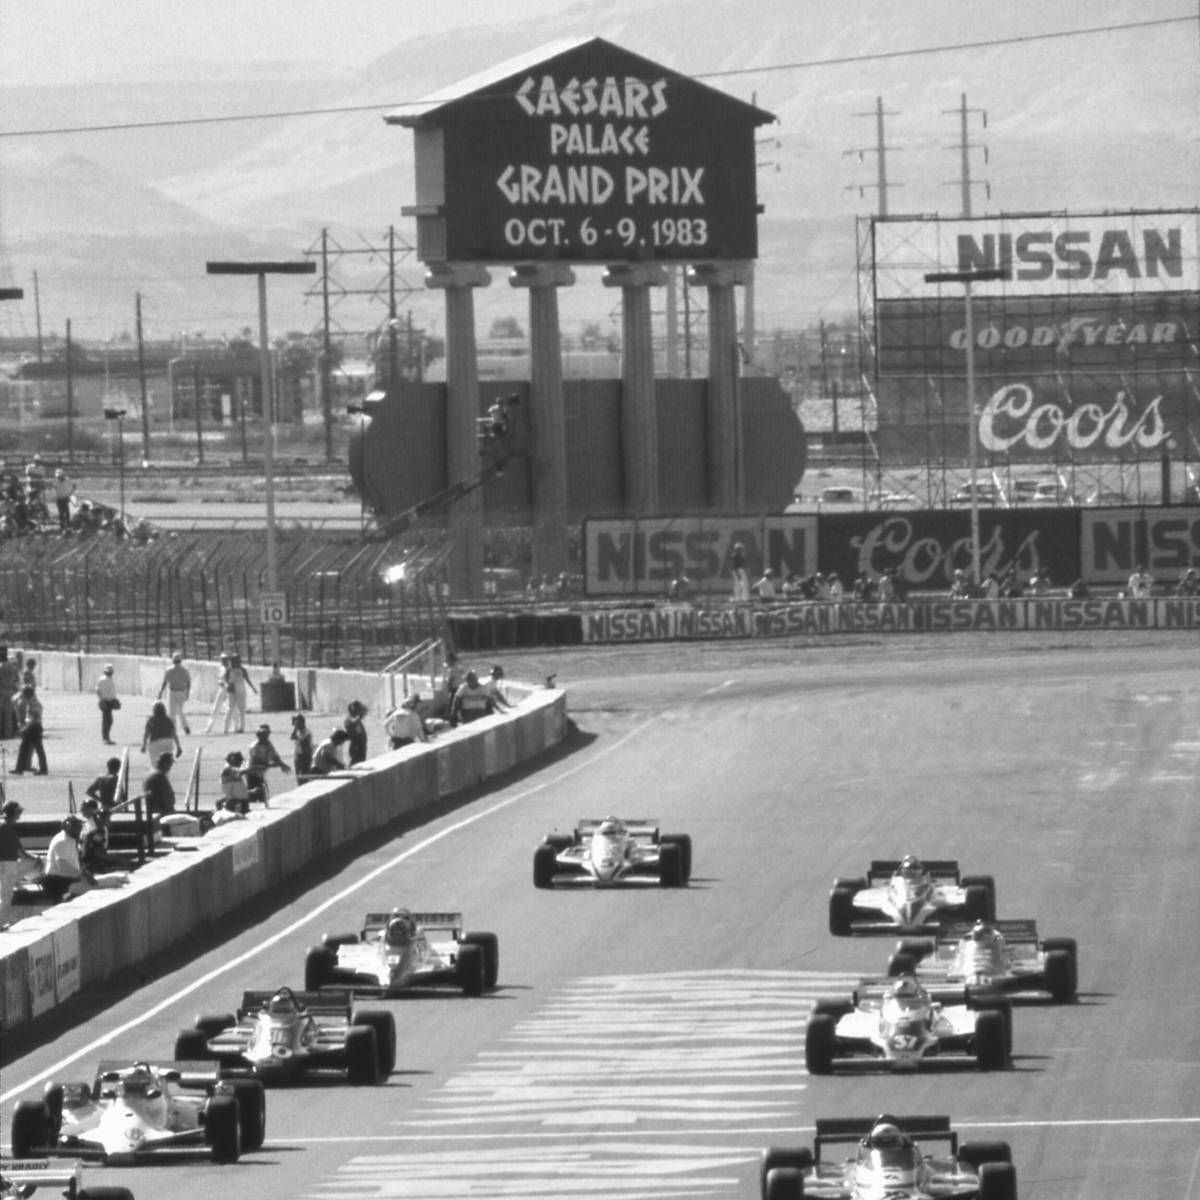 Caesars Palace converted its parking lot into a world-class track for formula one racing in Oct ...